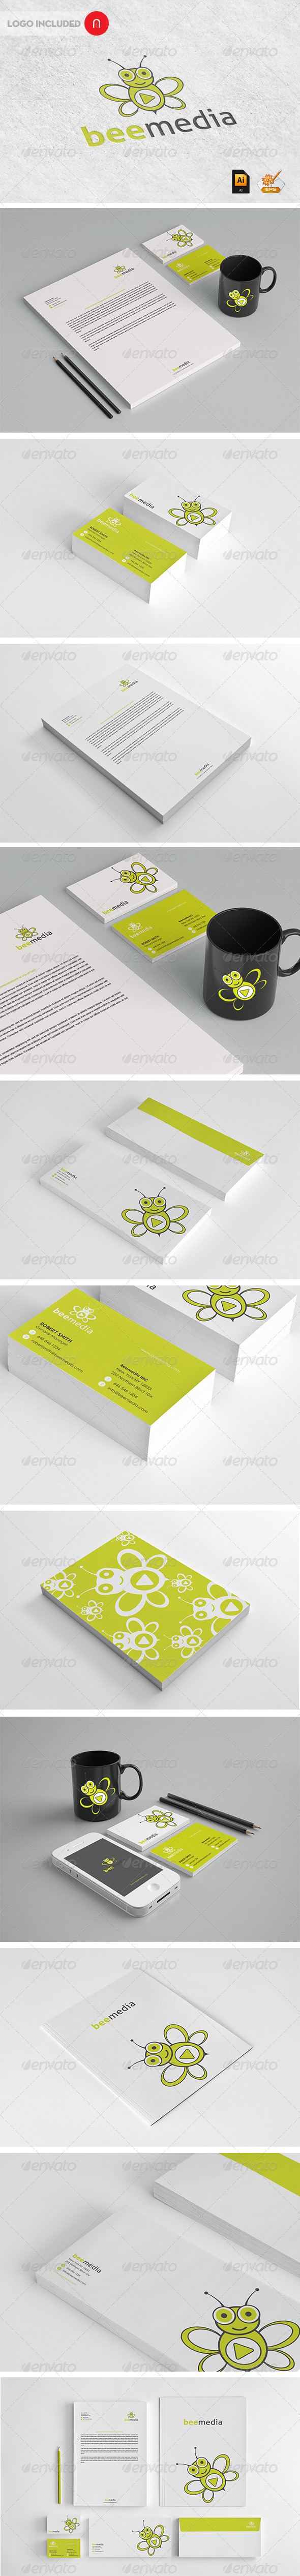 Stationary & Identity - Bee Media - Stationery Print Templates